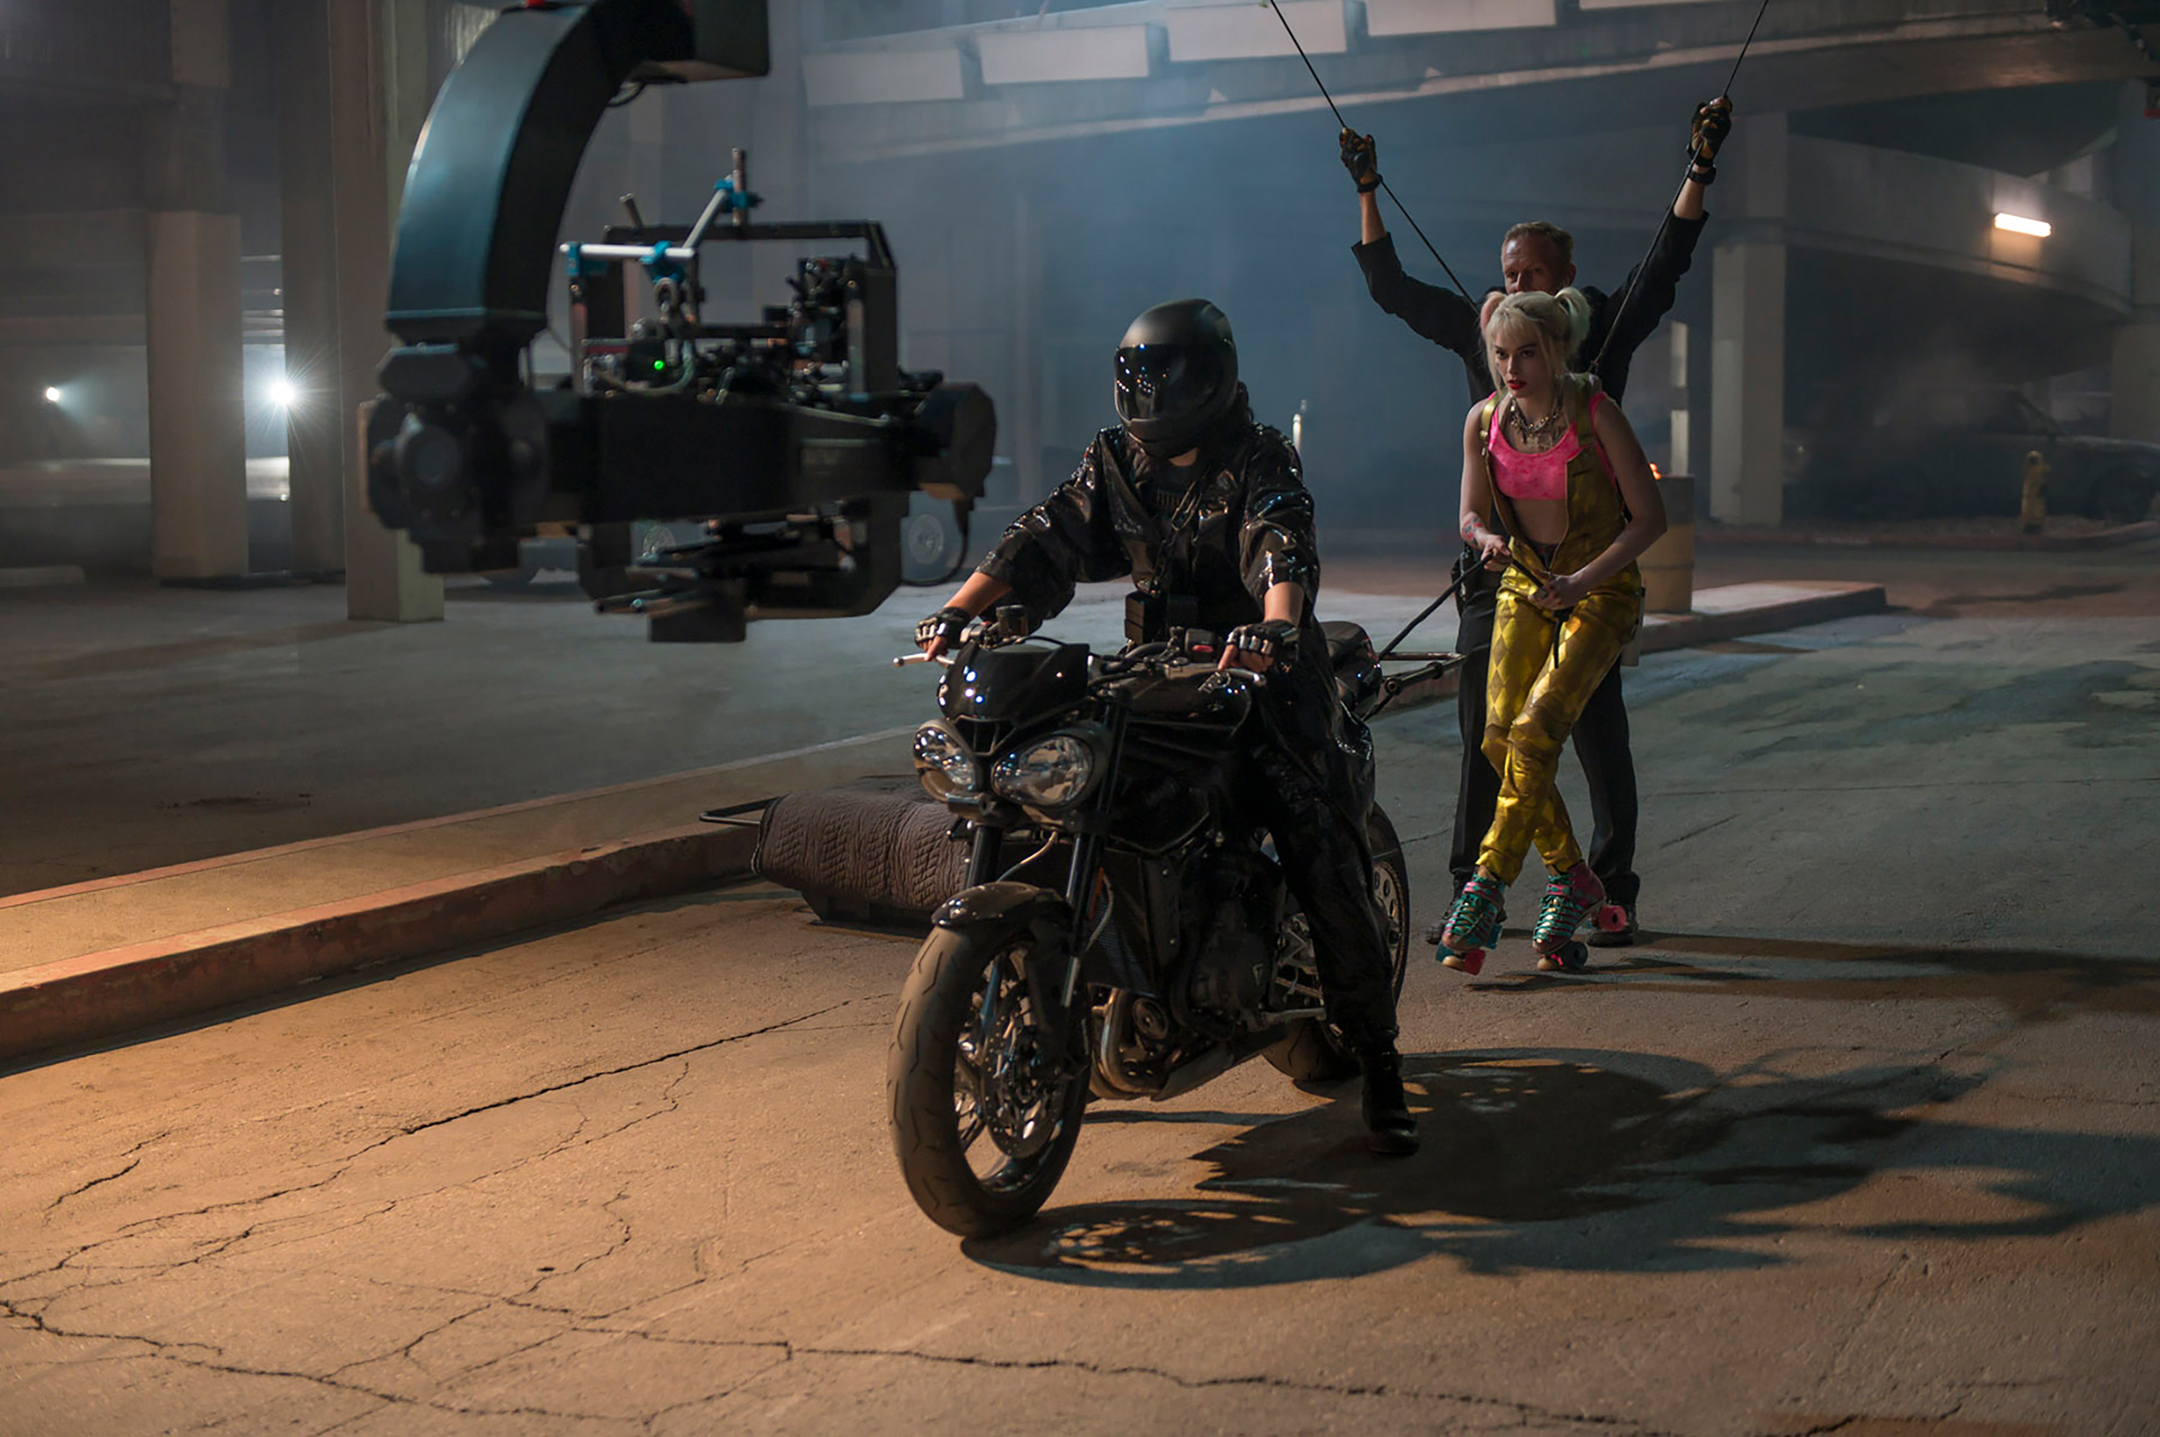 Triumph Street Triple RS - 2020 - Gotham (hot) pursuit - photo WB Pictures - making-of - Birds of Prey -and the Fantabulous Emancipation of One Harley Quinn-